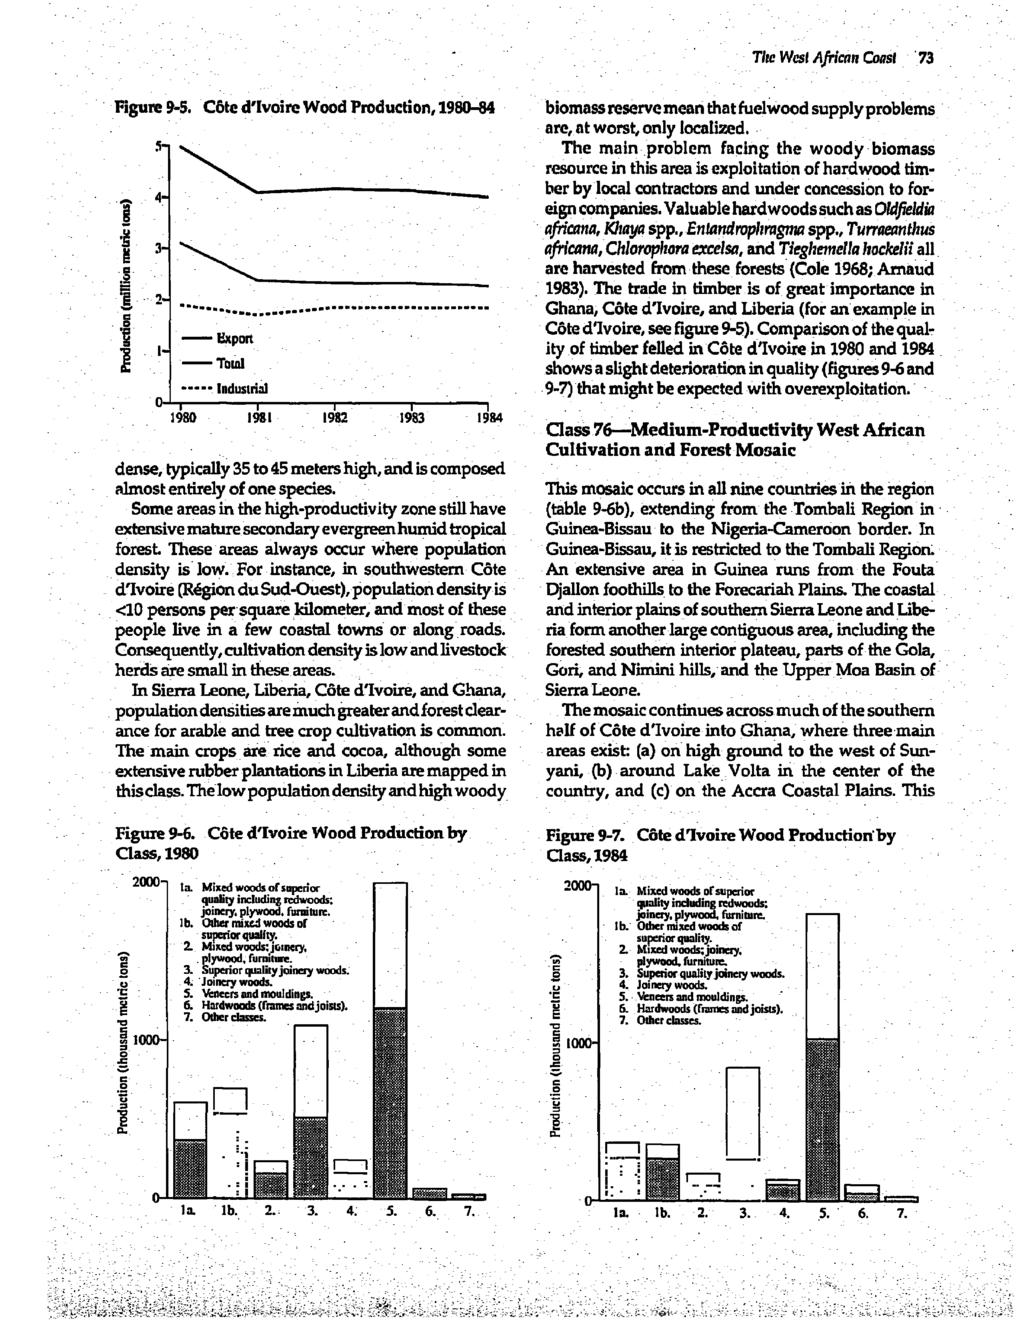 Tire WesI African CoasI 73 Figure9-5. Cbted'lvoireWoodProduction,1980-84 biomass reserve mean that fuelwood supply problems are, at worst, only localized.